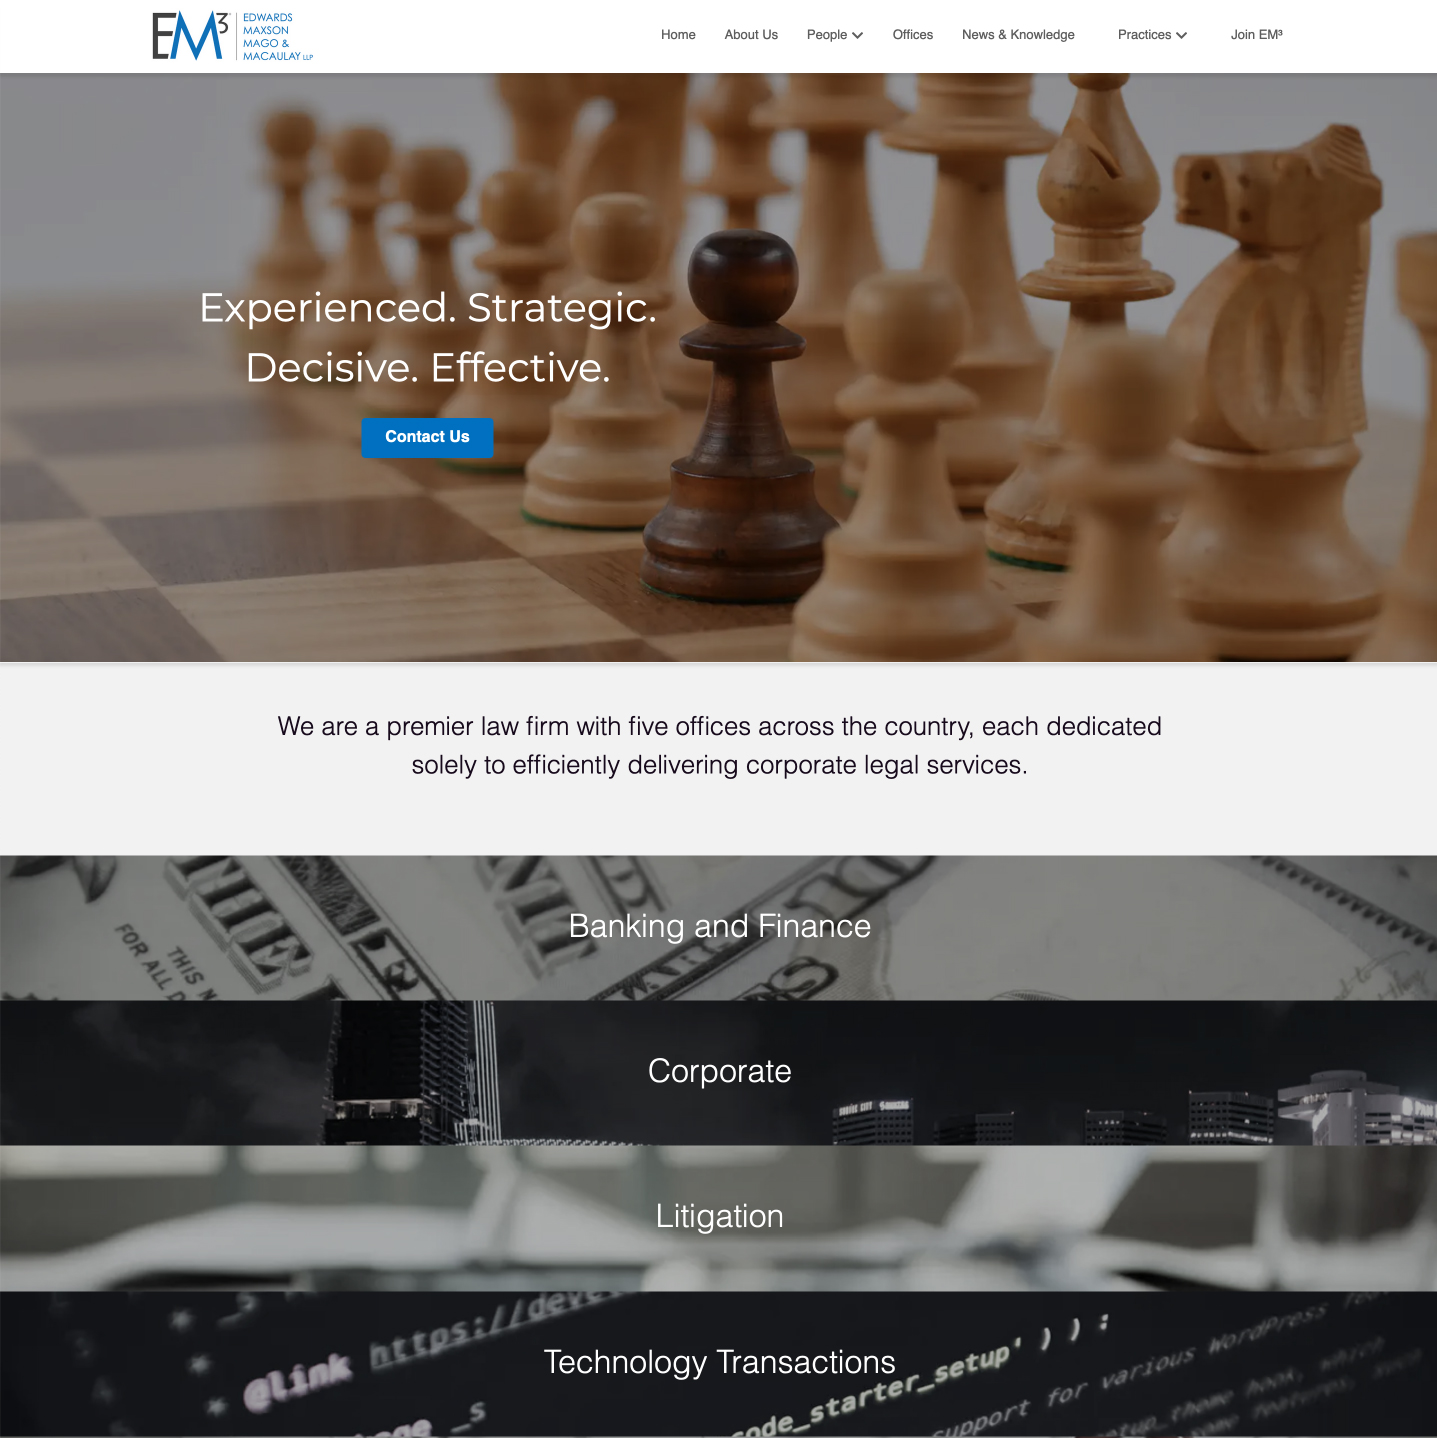 Sophisticated law firm website made by Winnona Partners